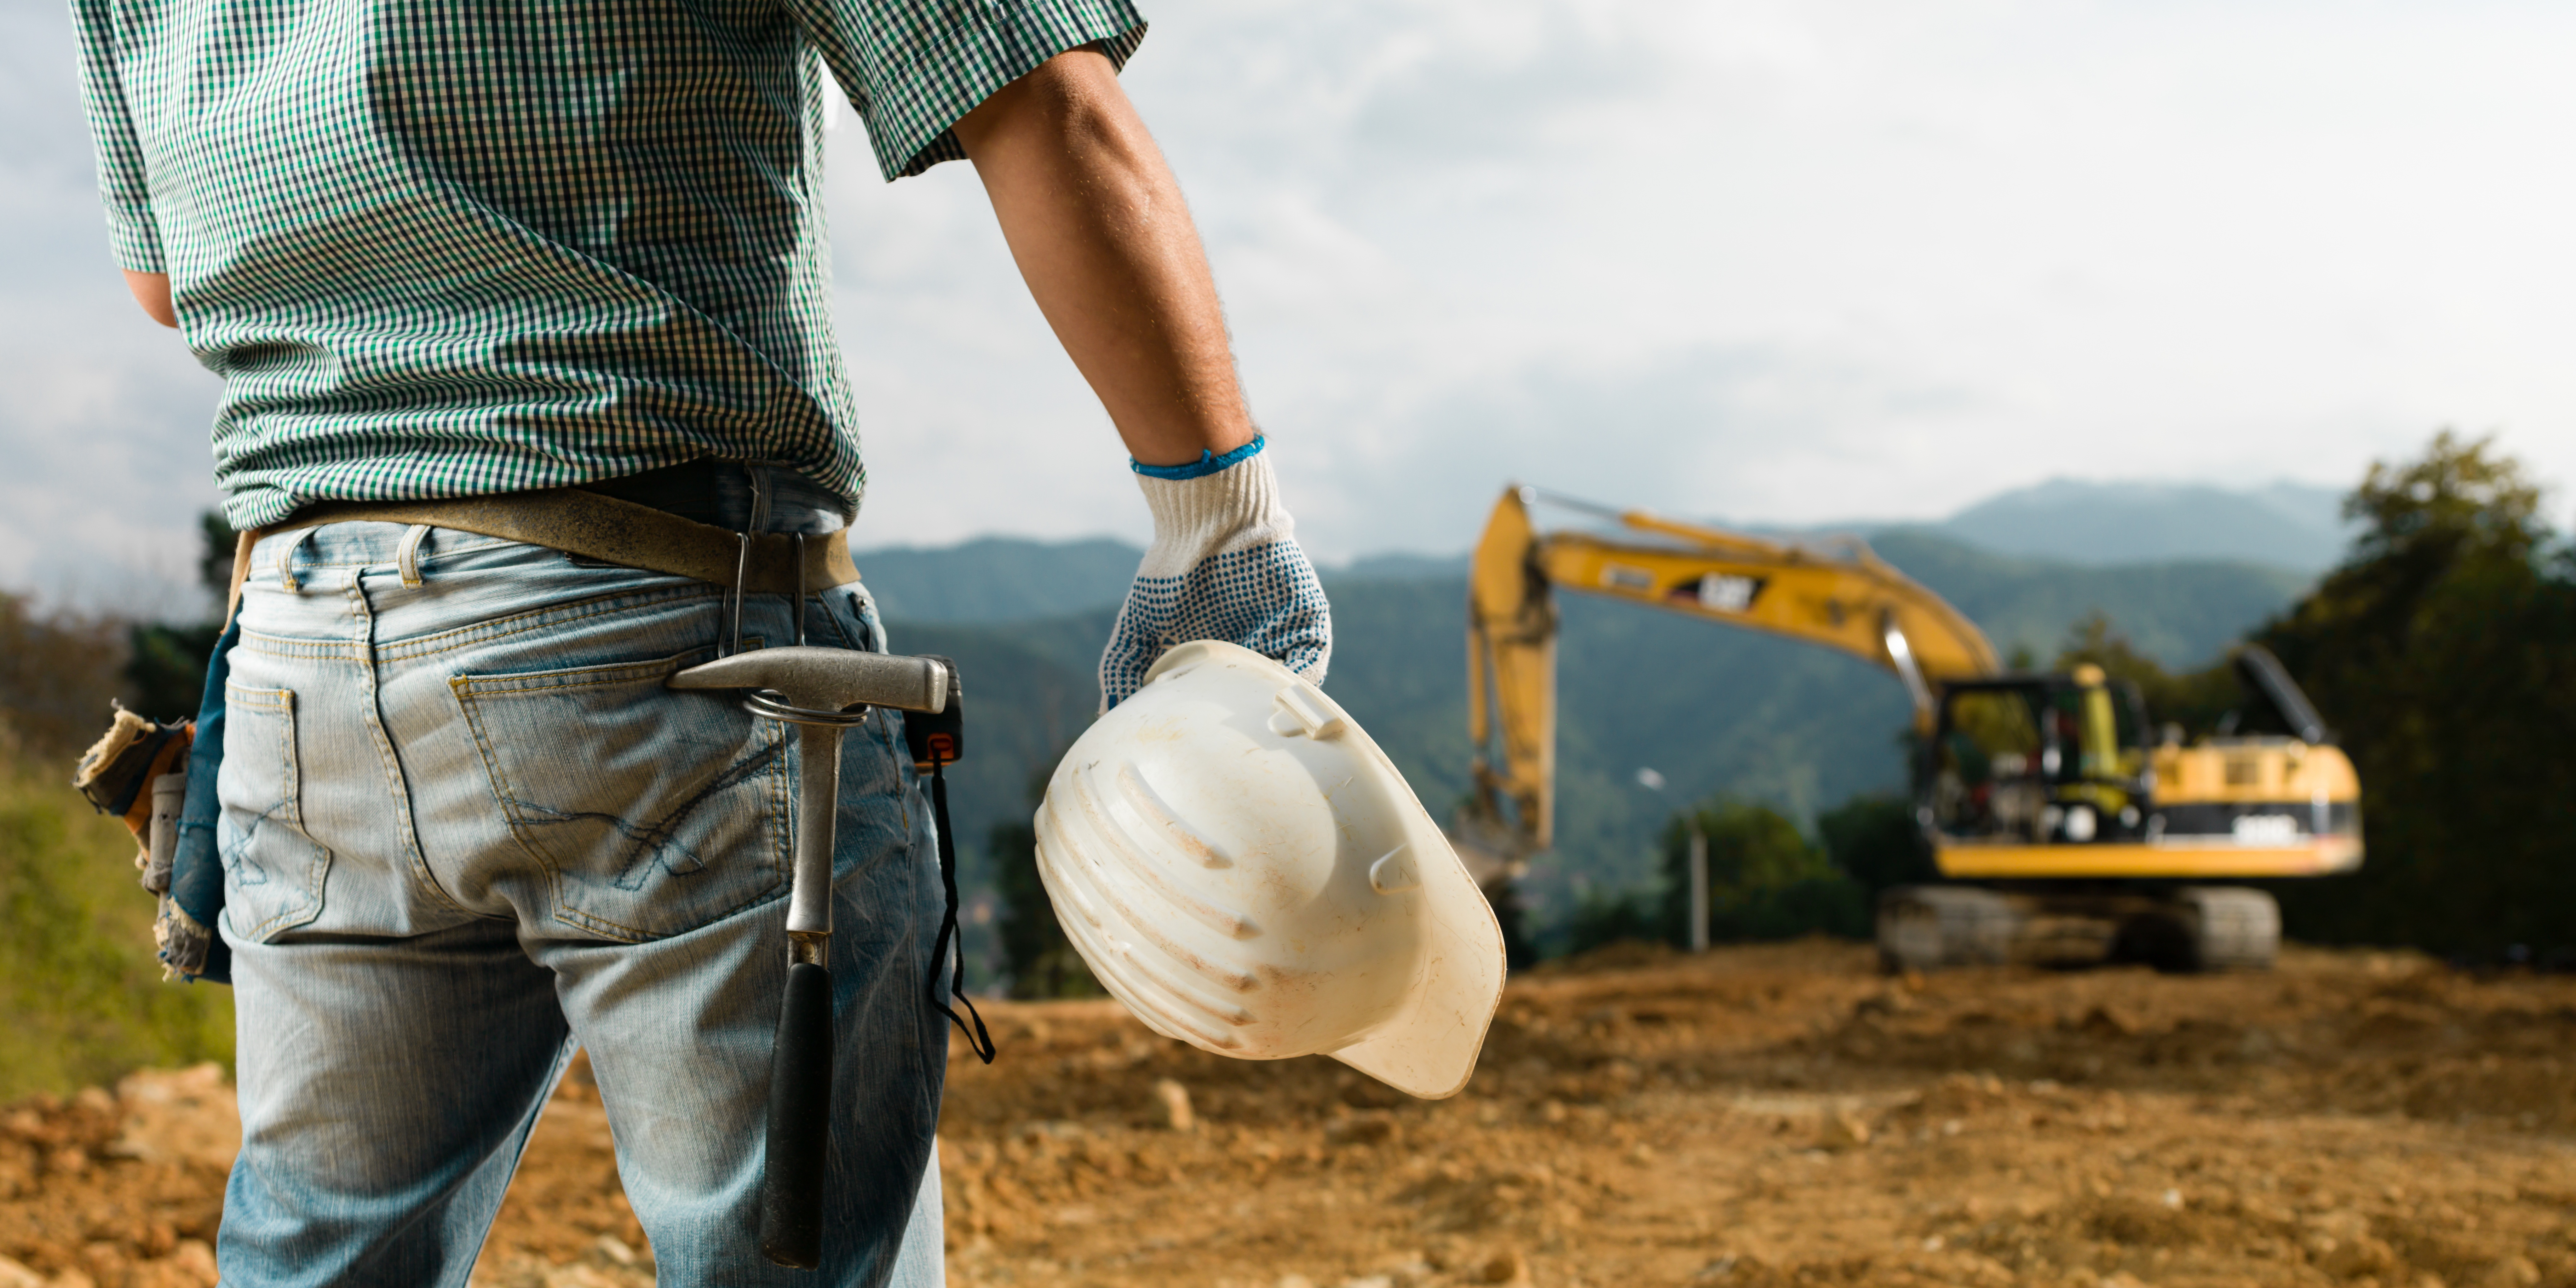 lone worker, construction worker, tractor, hard hat